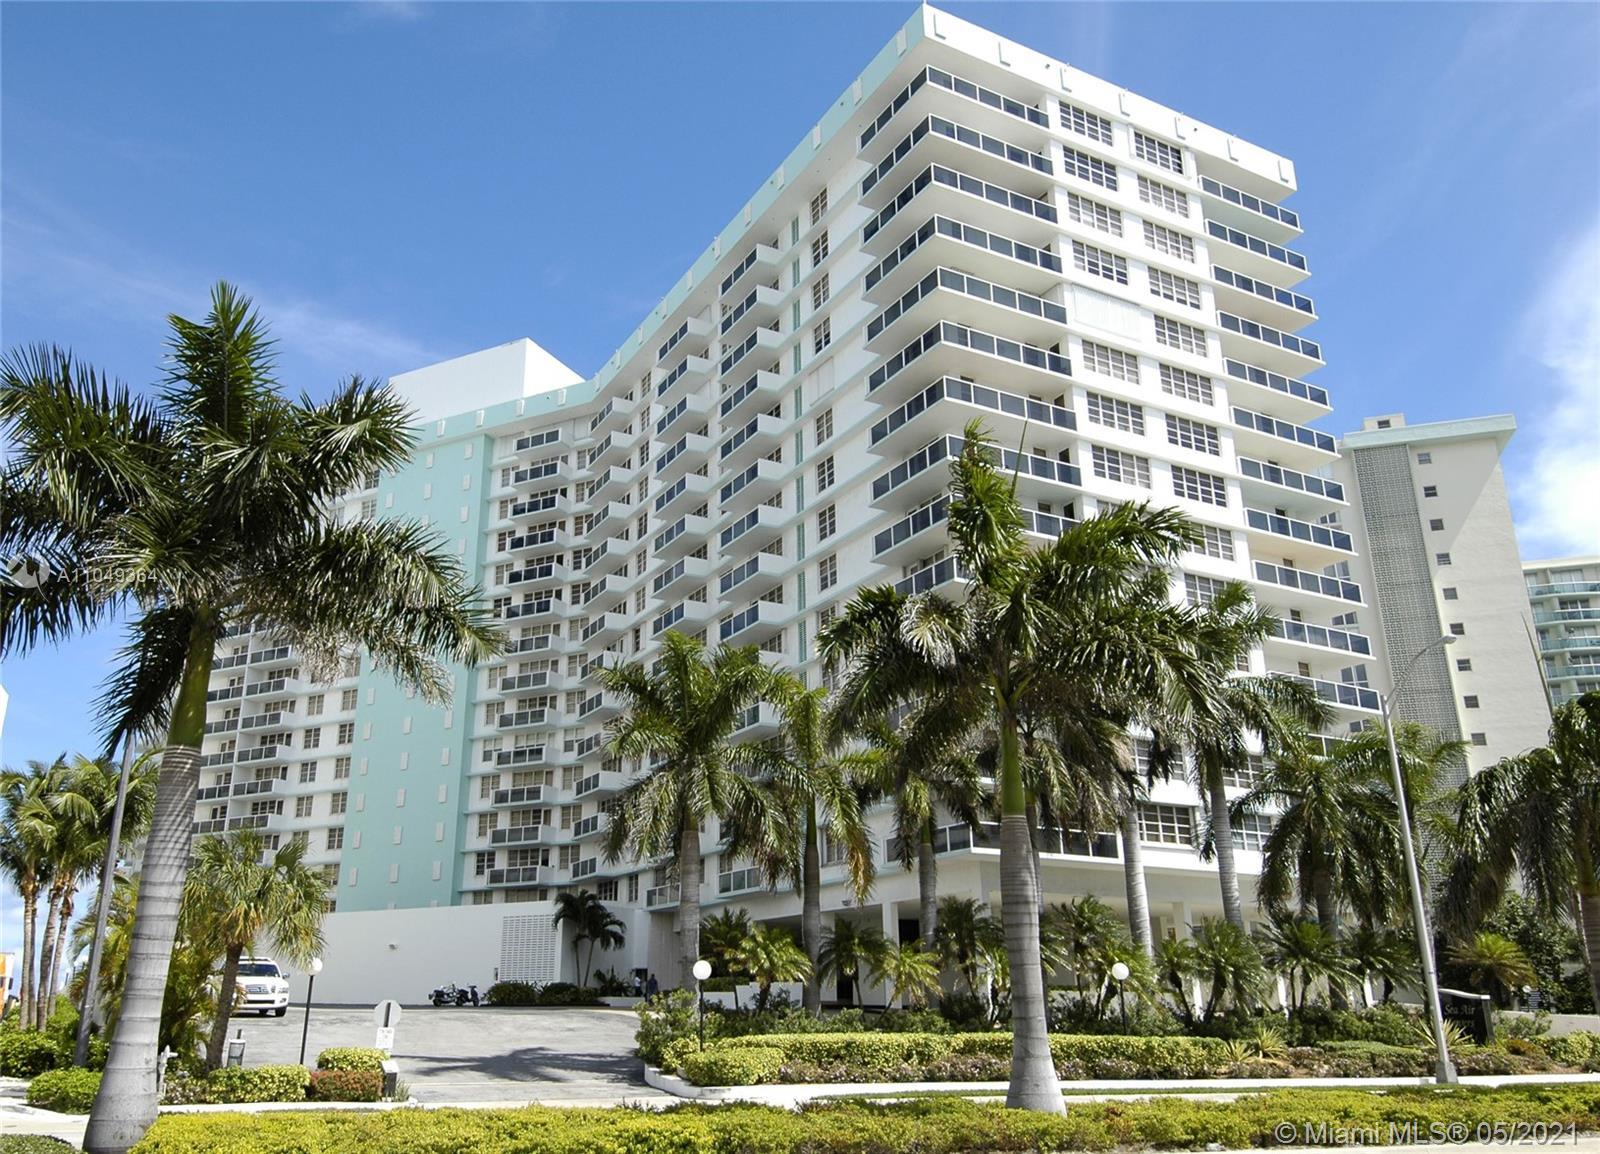 SEA AIR TOWERS - HOLLYWOOD BEACH - OCEANFRONT SPECTACULARLY REMODELED APARTMENT. LOW FLOOR FURNISHED